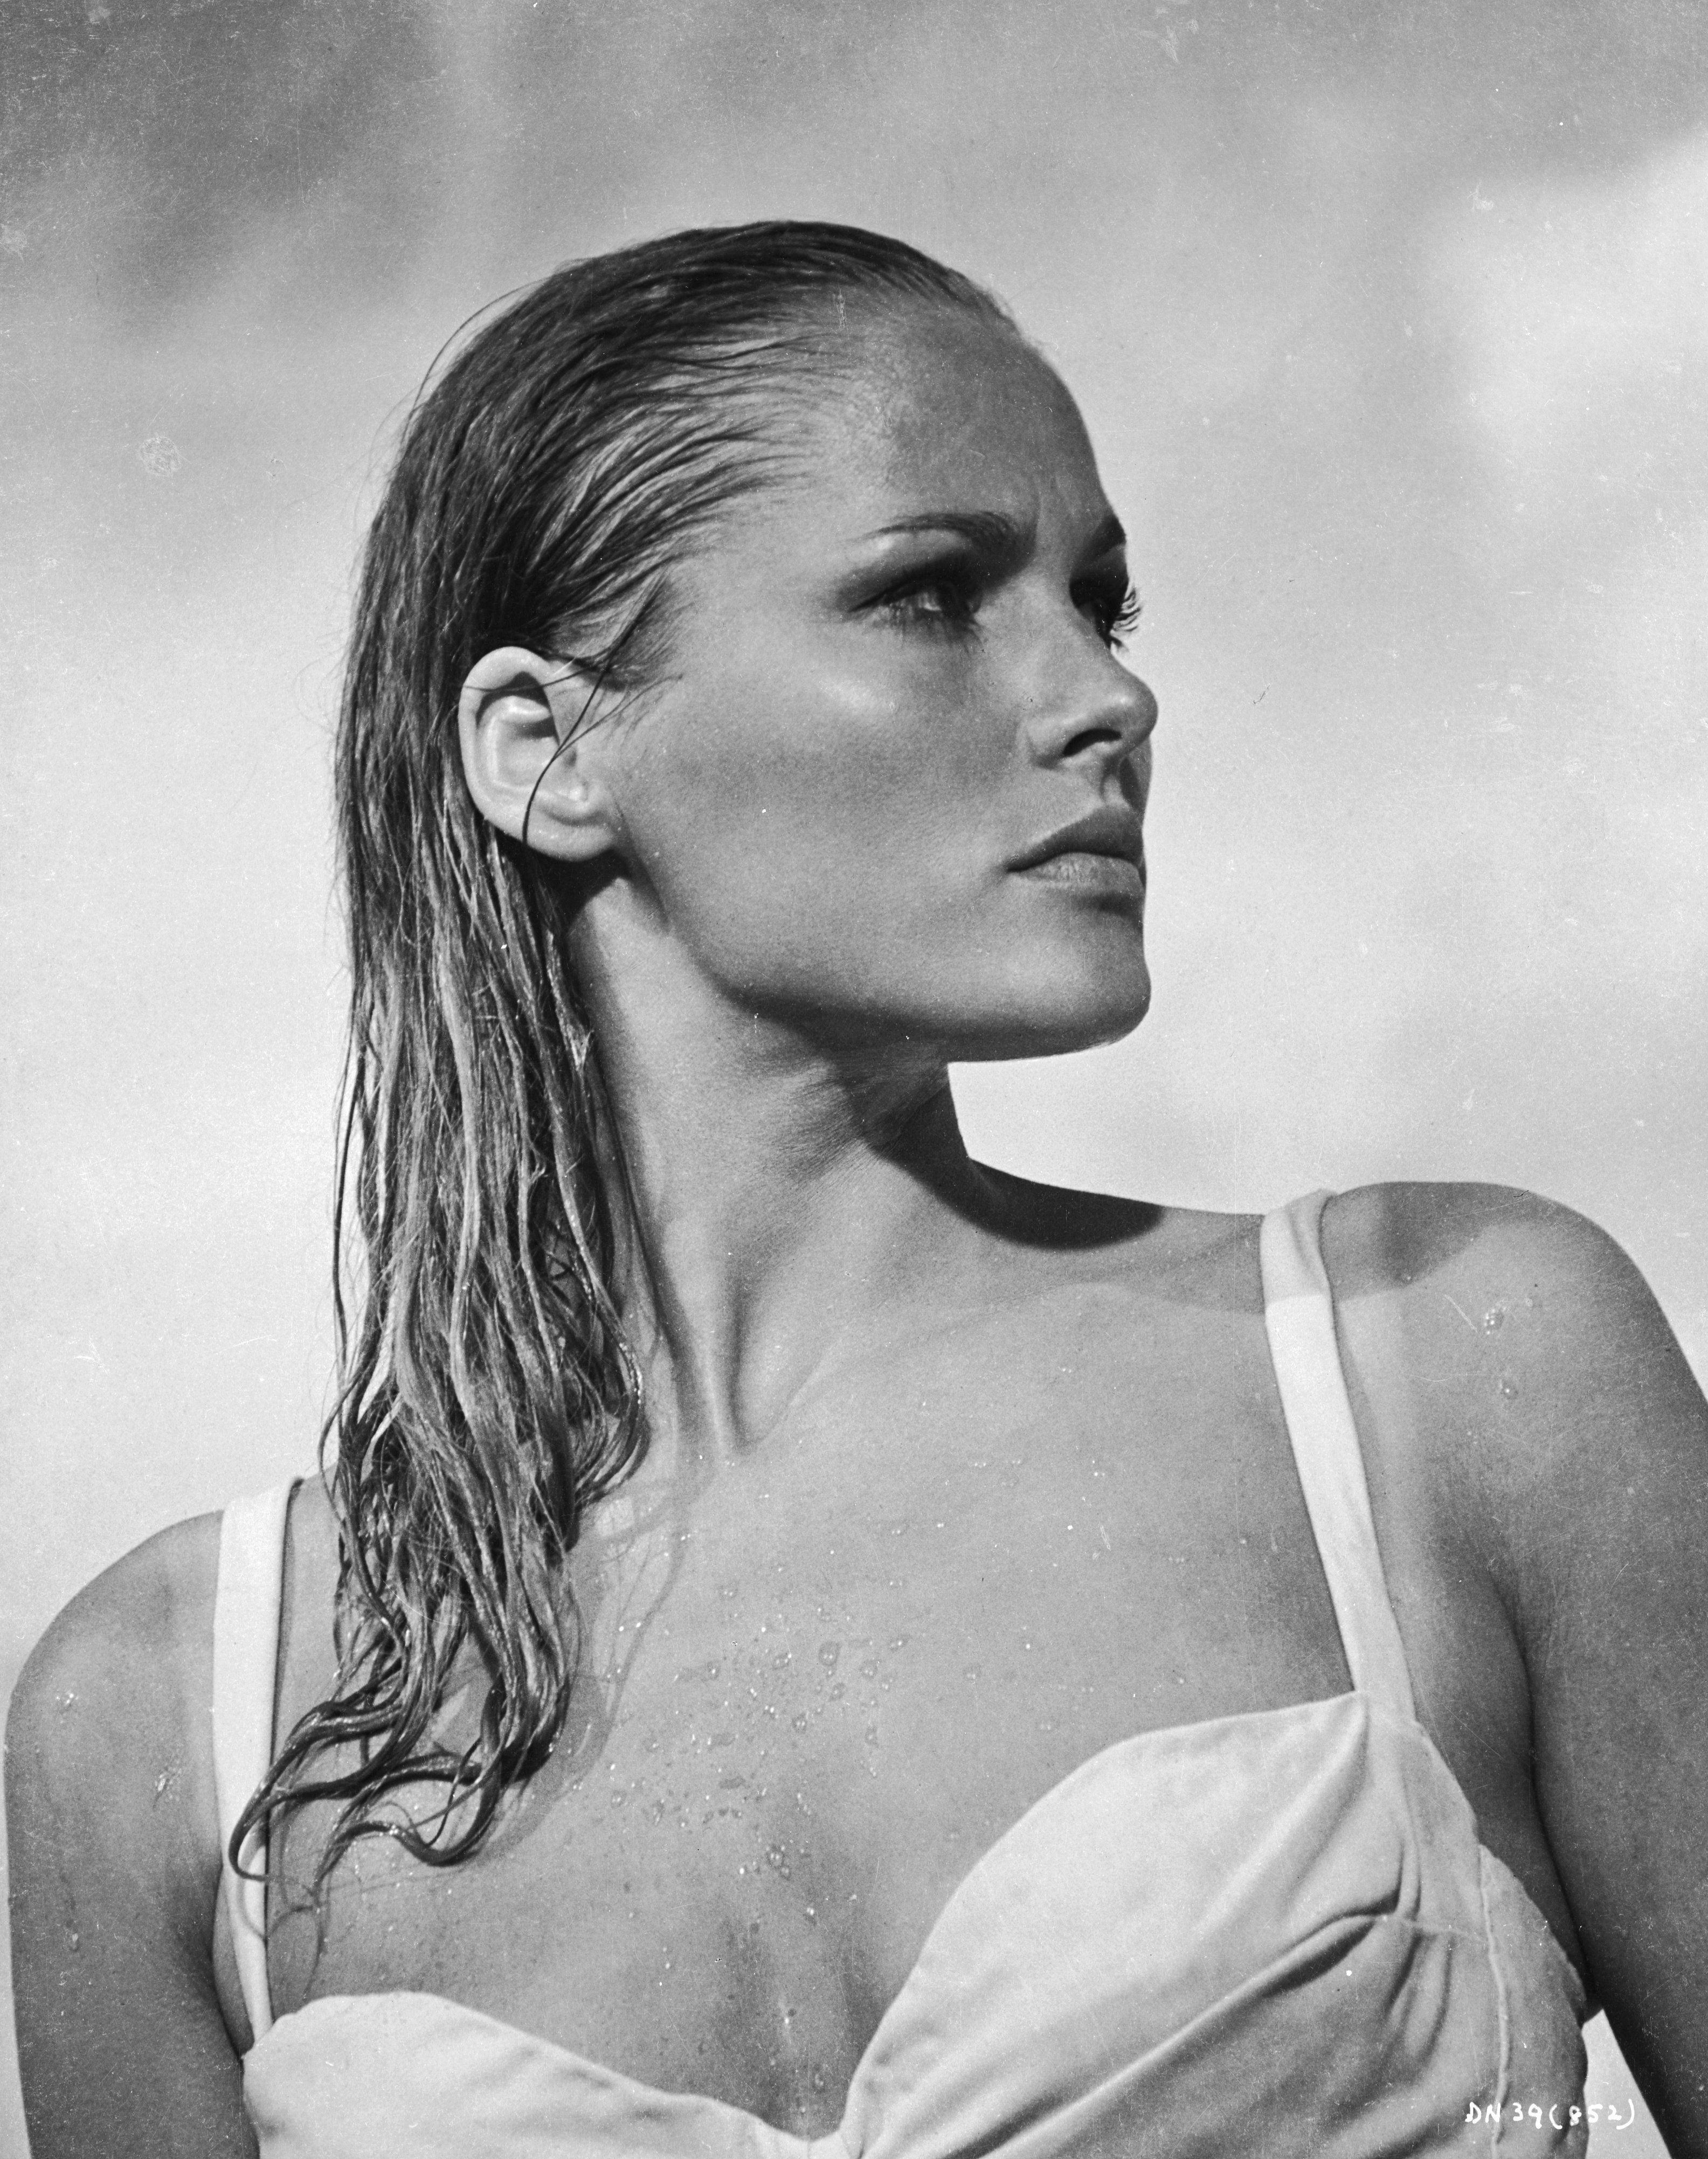 1962:  Glamorous Swiss actress Ursula Andress as Honey Ryder in a scene from the first James Bond movie 'Dr No'.  (Photo via John Kobal Foundation/Getty Images)